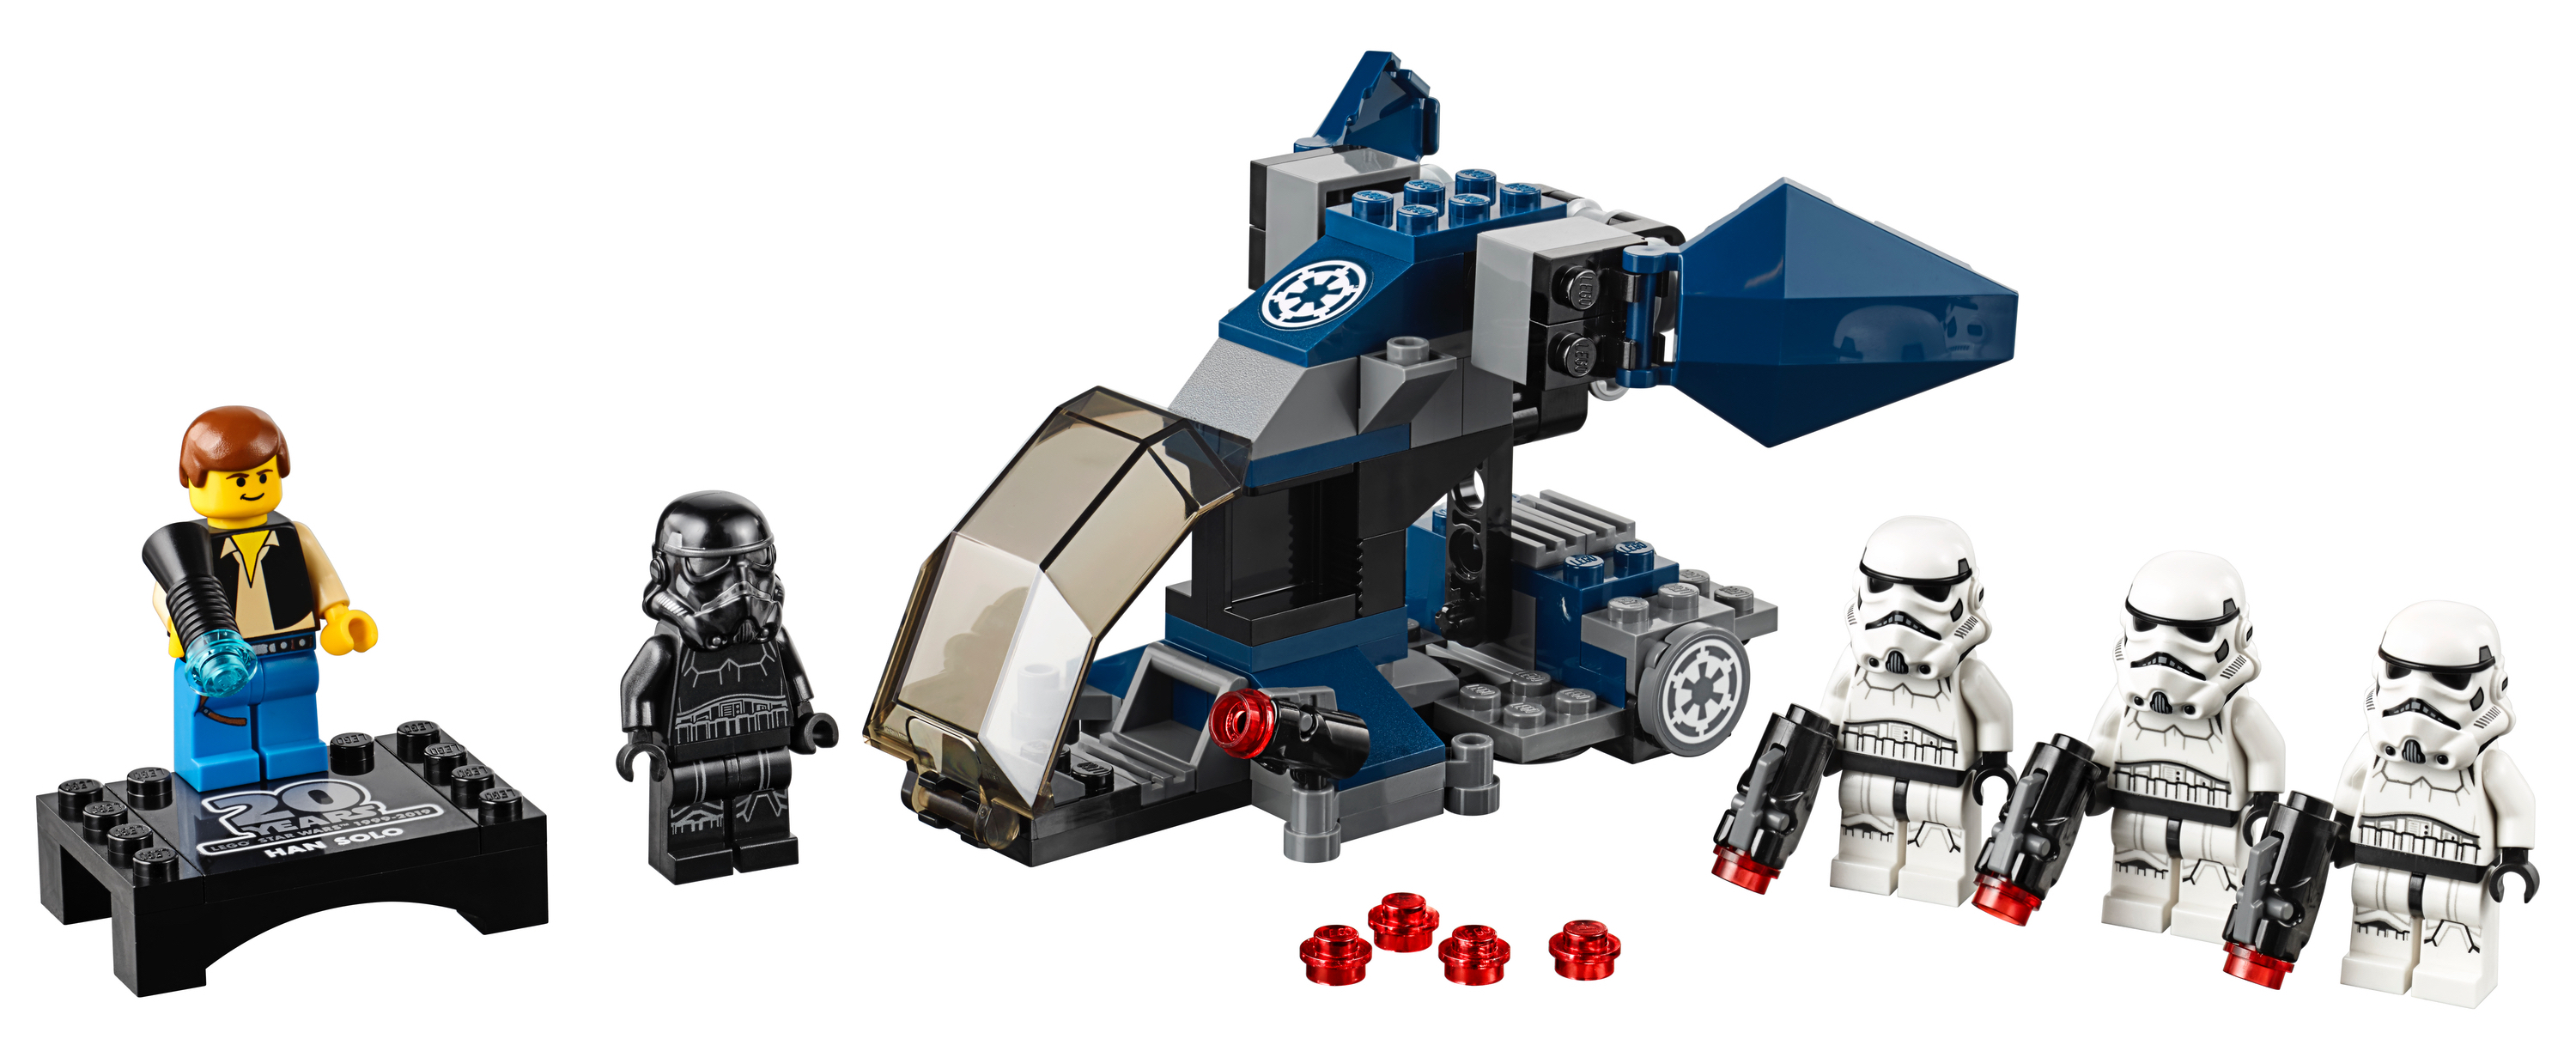 LEGO Star Wars 20th Anniversary Dropship